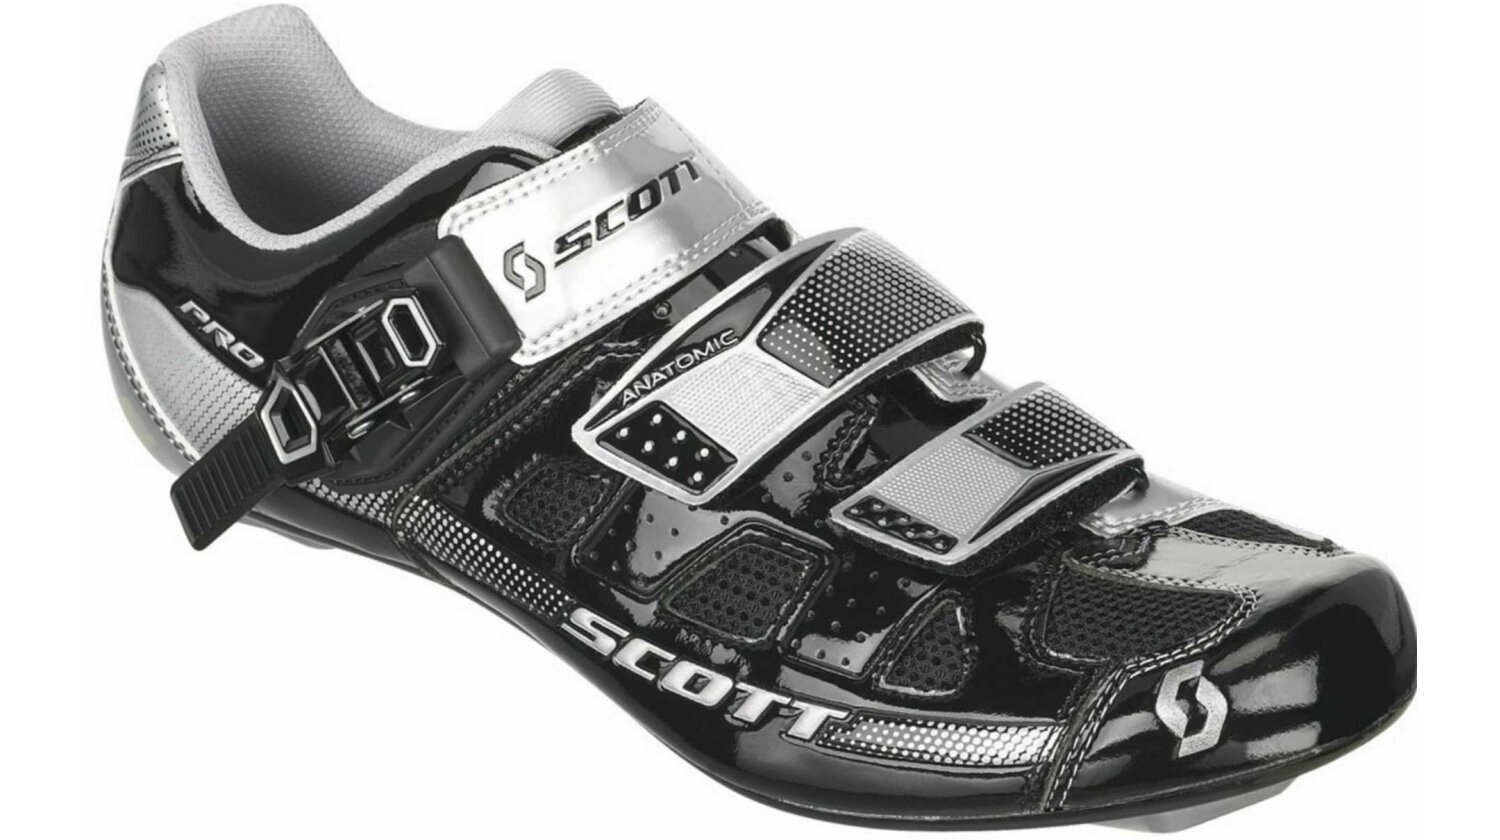 Scott Road Pro Schuh black/silver gloss 44